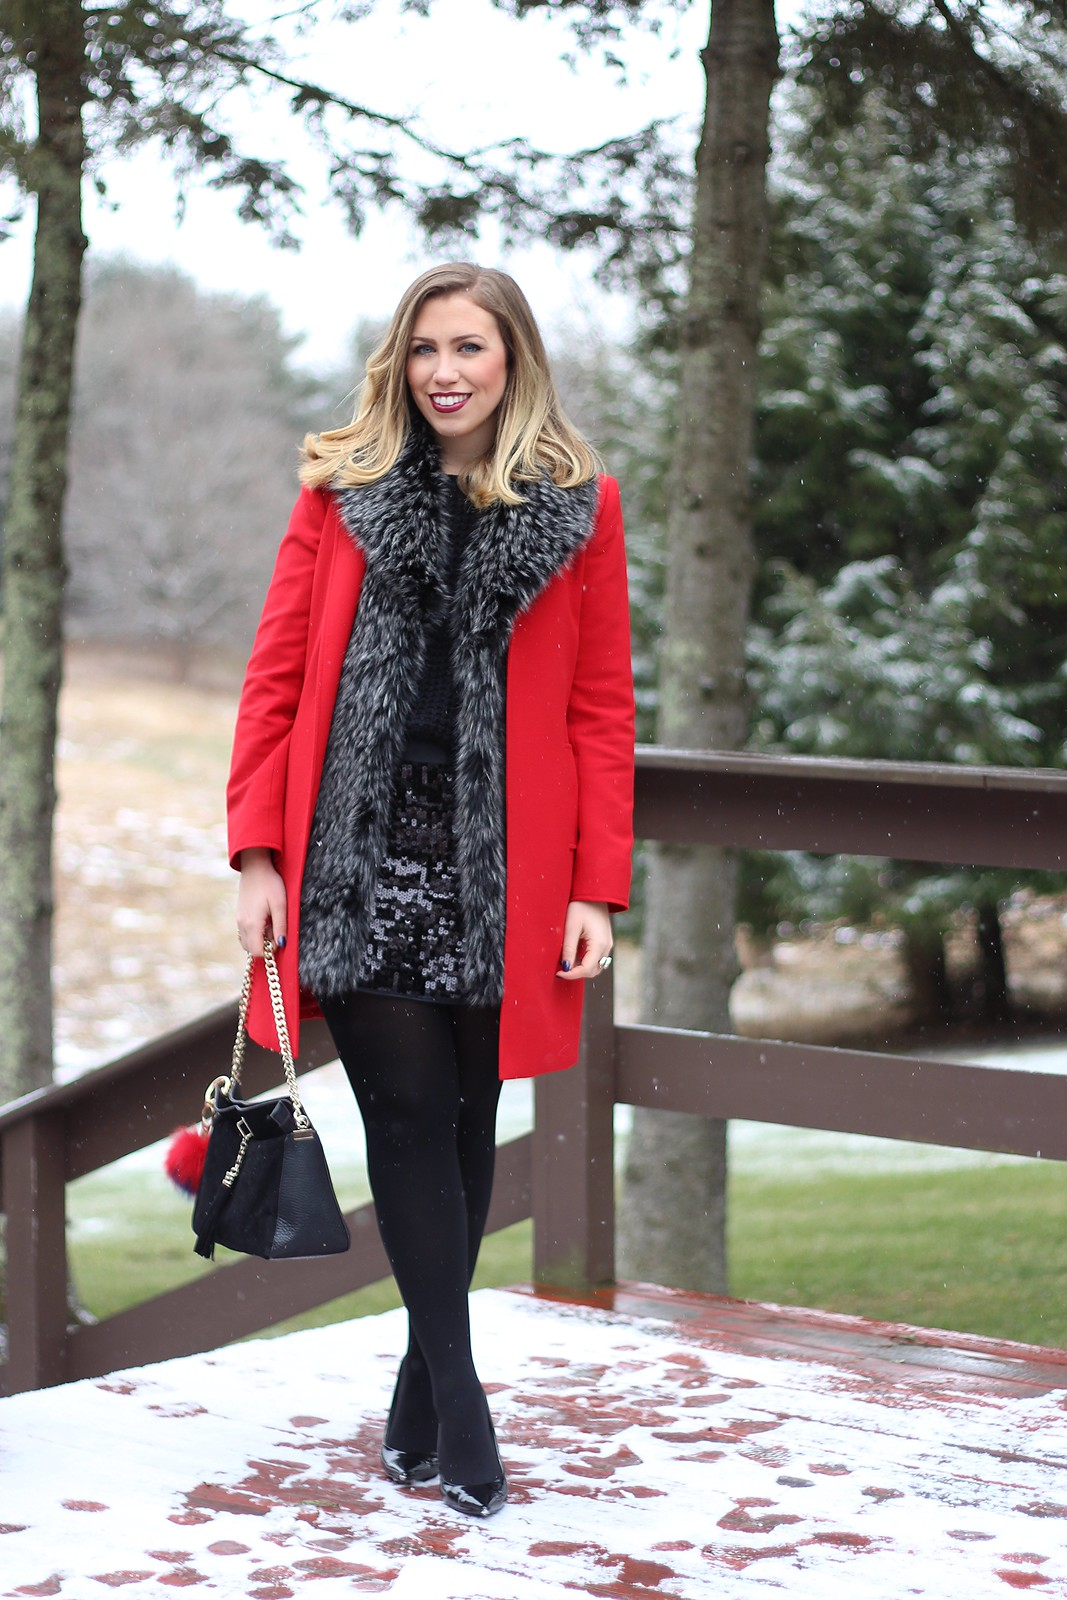 Red Winter Coat | Faux Fur Vest Collar | Black Sequin Mini Skirt | Holiday Party Outfit | A Look Back at 10 Years of Blogging Living After Midnite Blogger Jackie Giardina